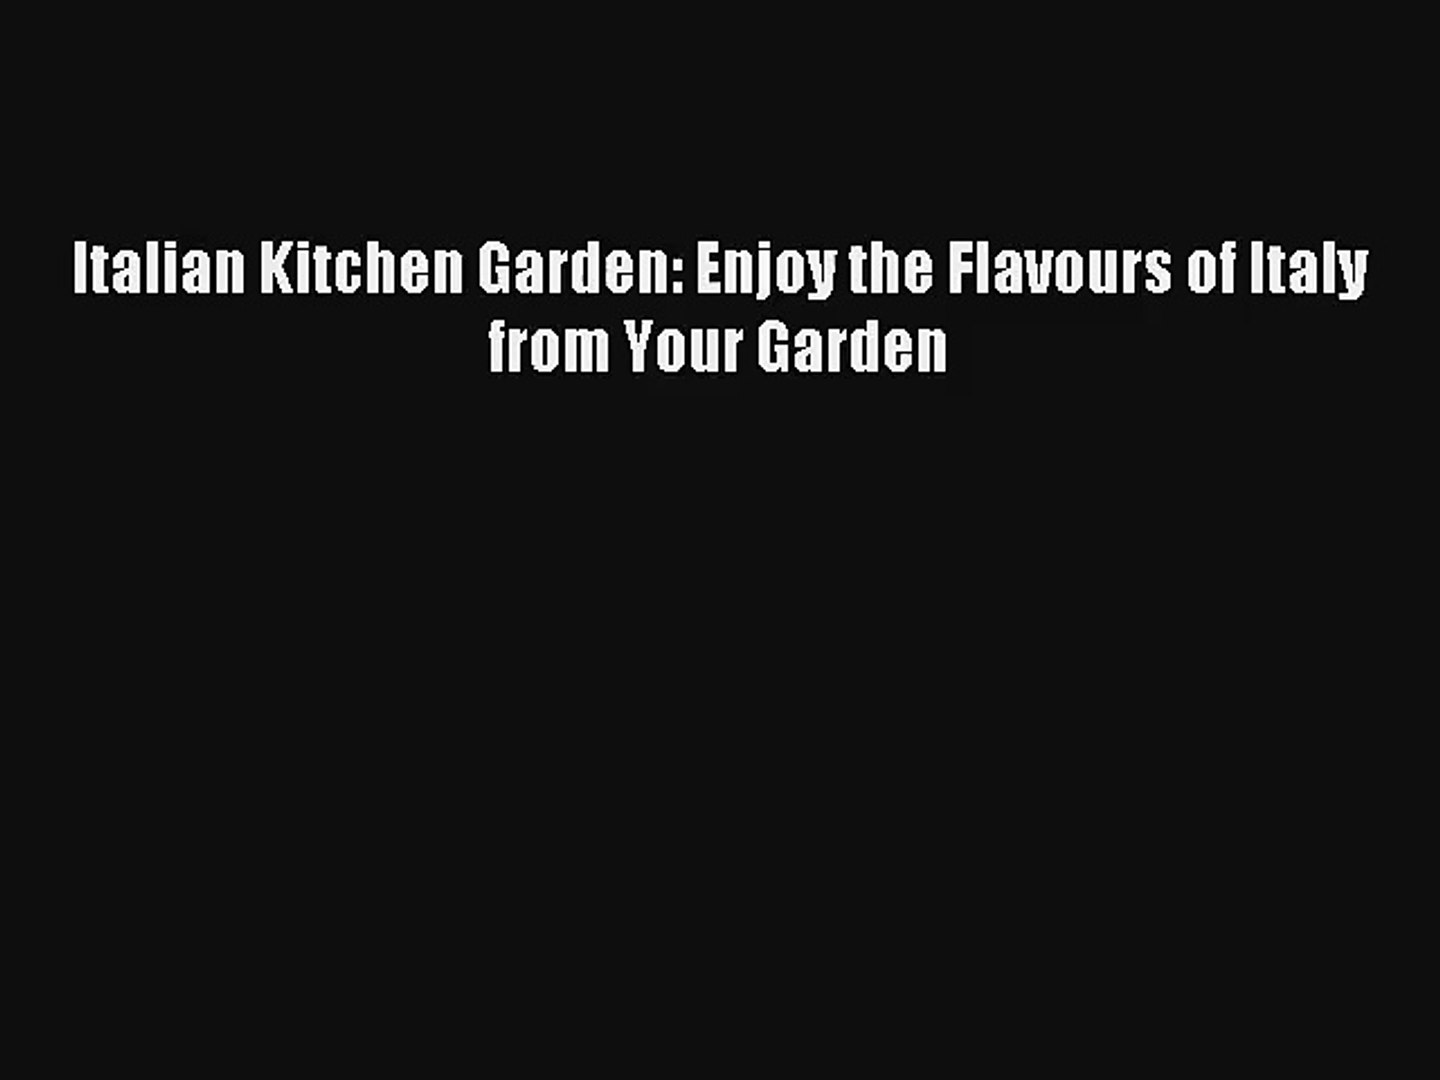 Download Italian Kitchen Garden: Enjoy the Flavours of Italy from Your Garden# Ebook Free